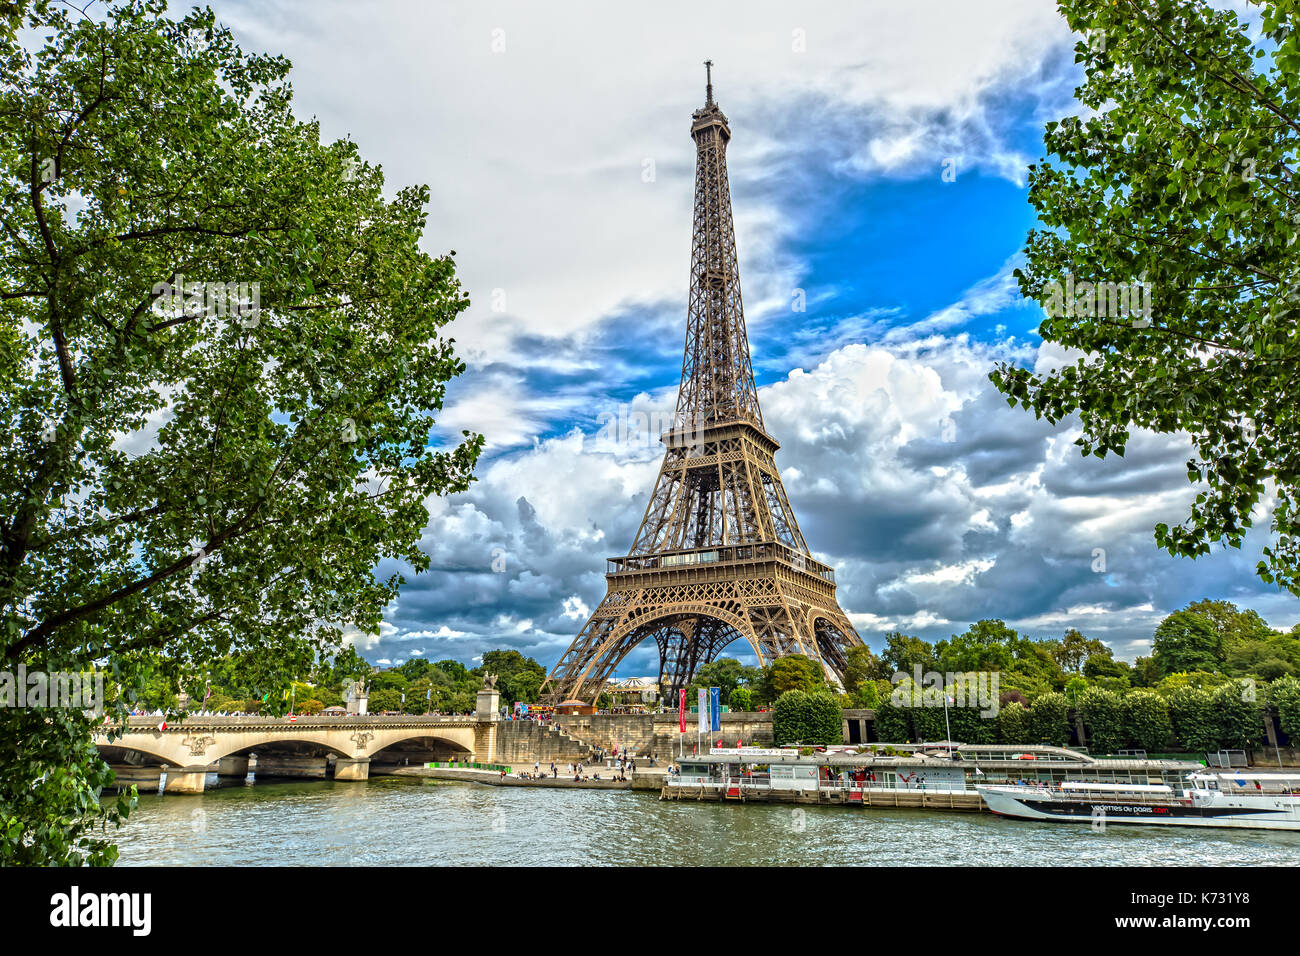 View over the Eiffel Tower in Paris - Stock Image